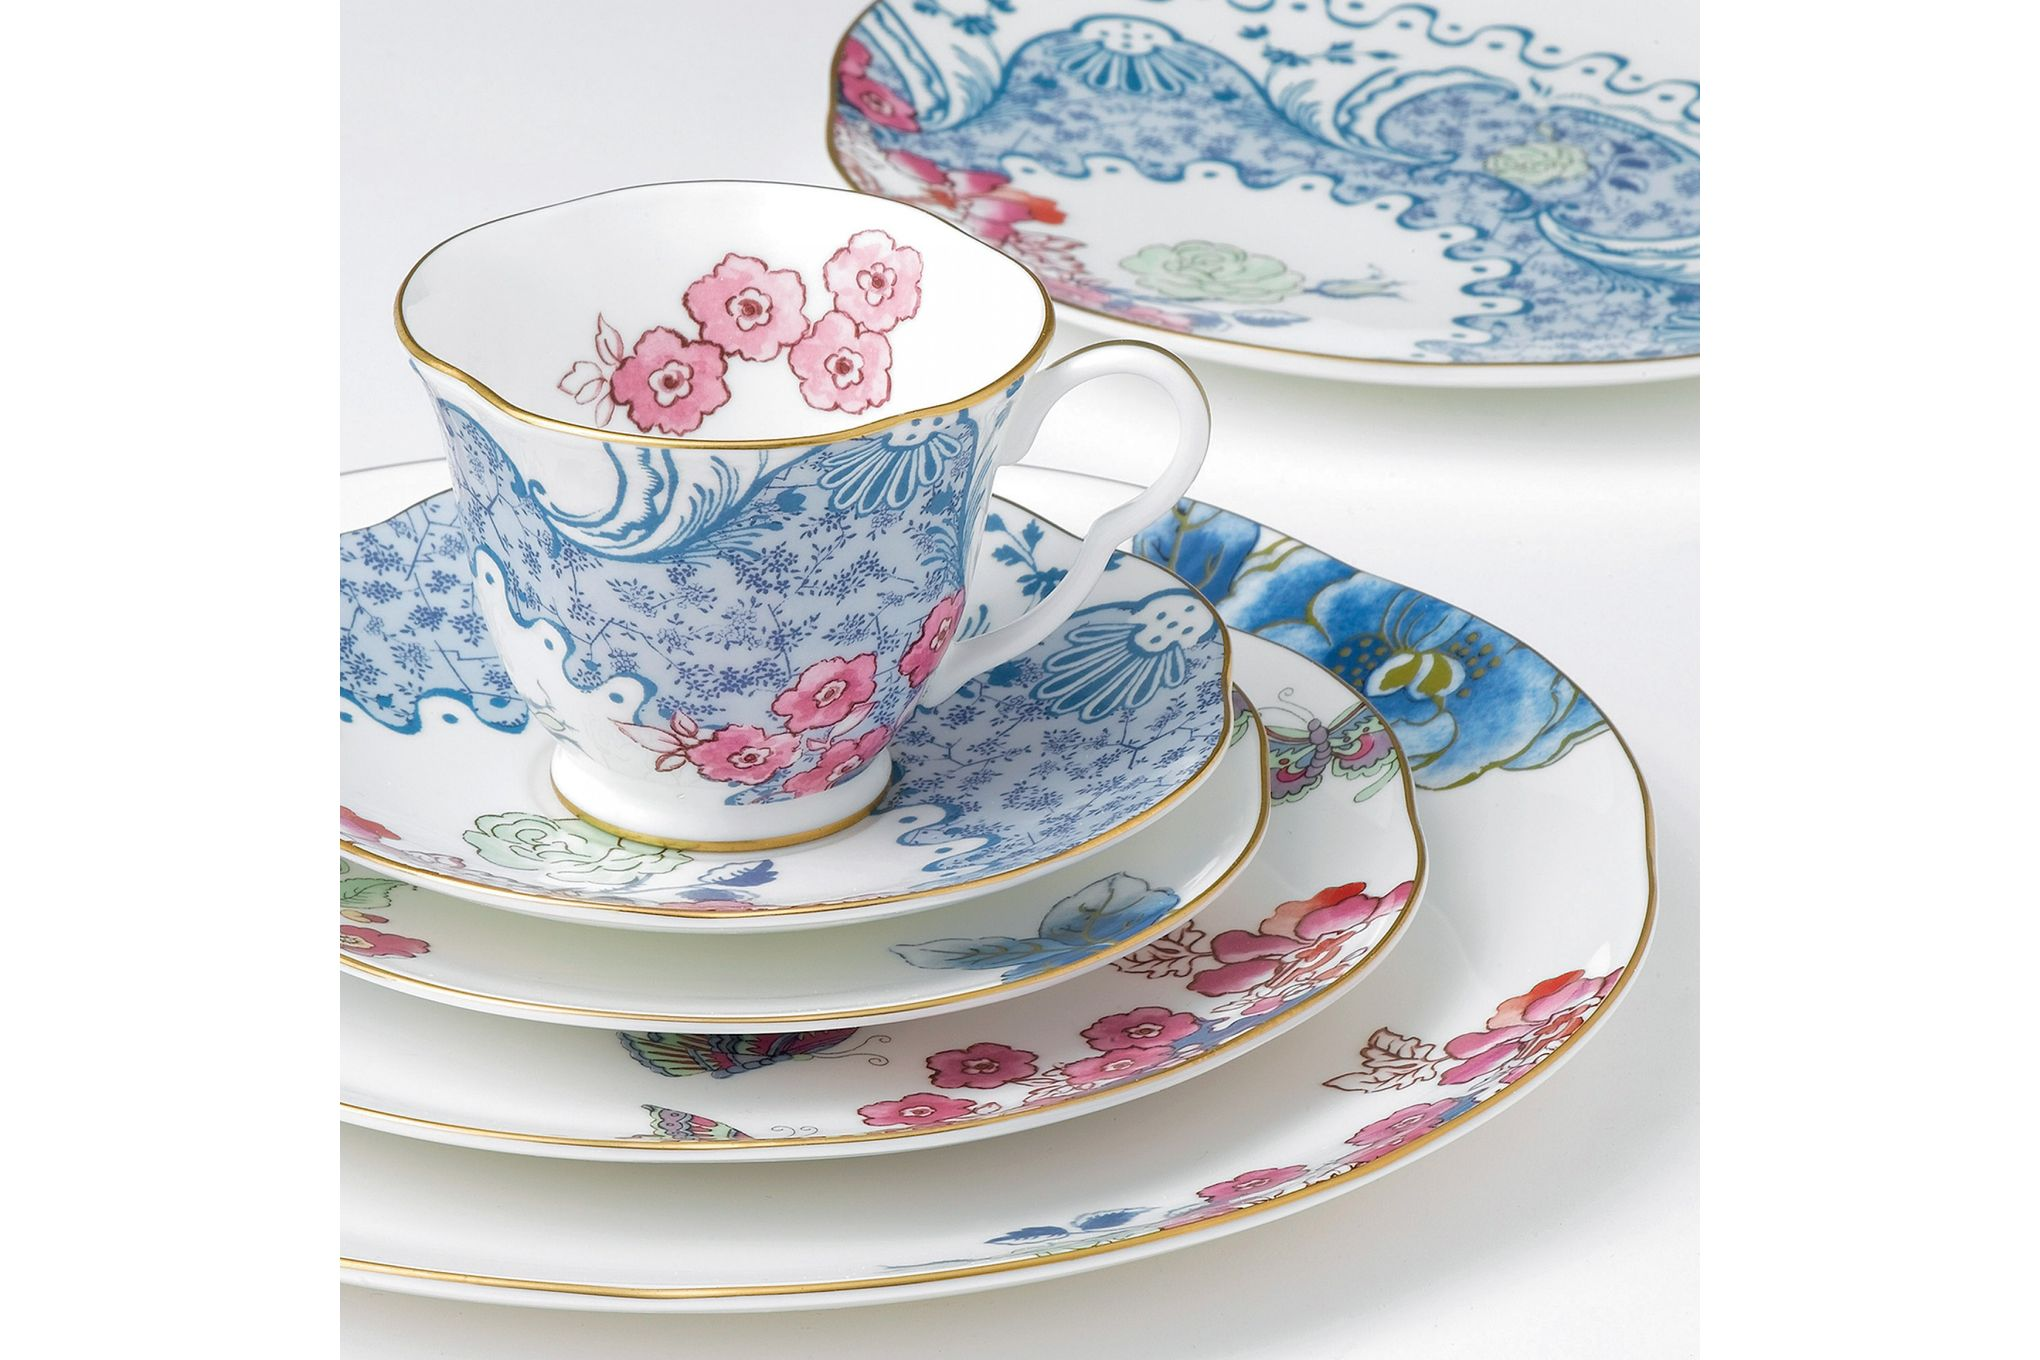 Wedgwood Butterfly Bloom Teacup & Saucer Blue and Pink thumb 2